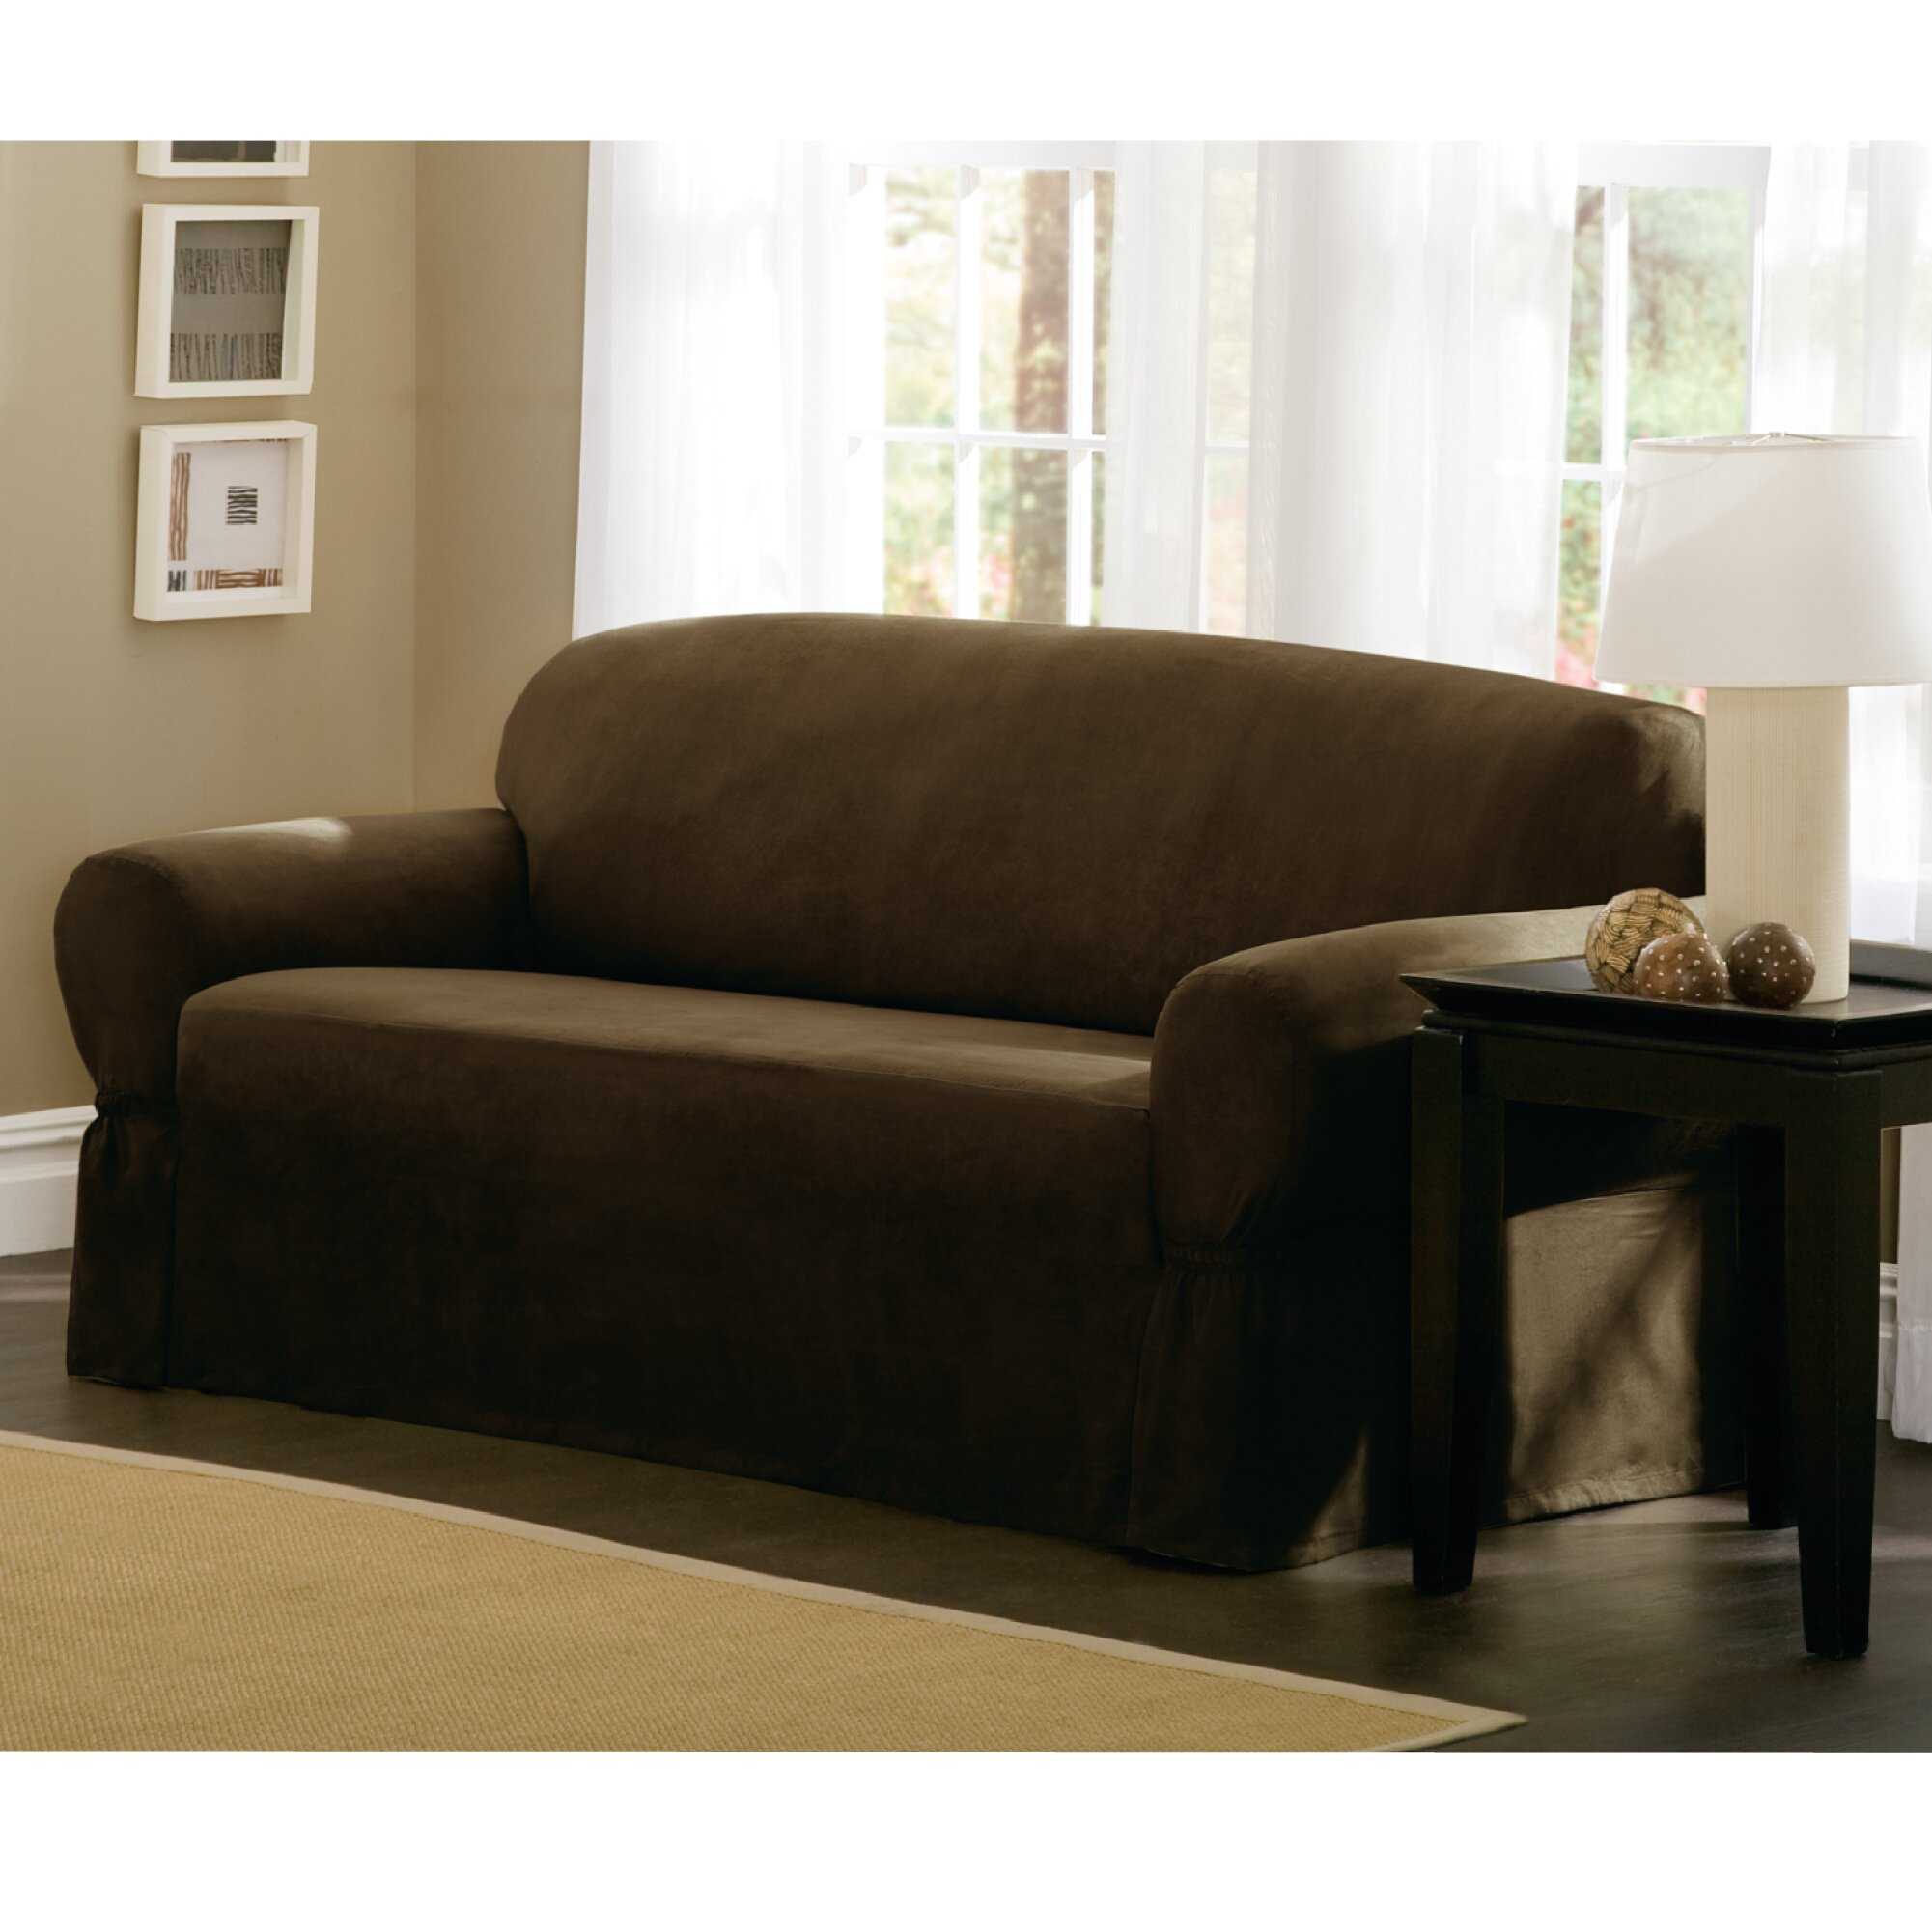 Loveseat Slipcovers T Cushion